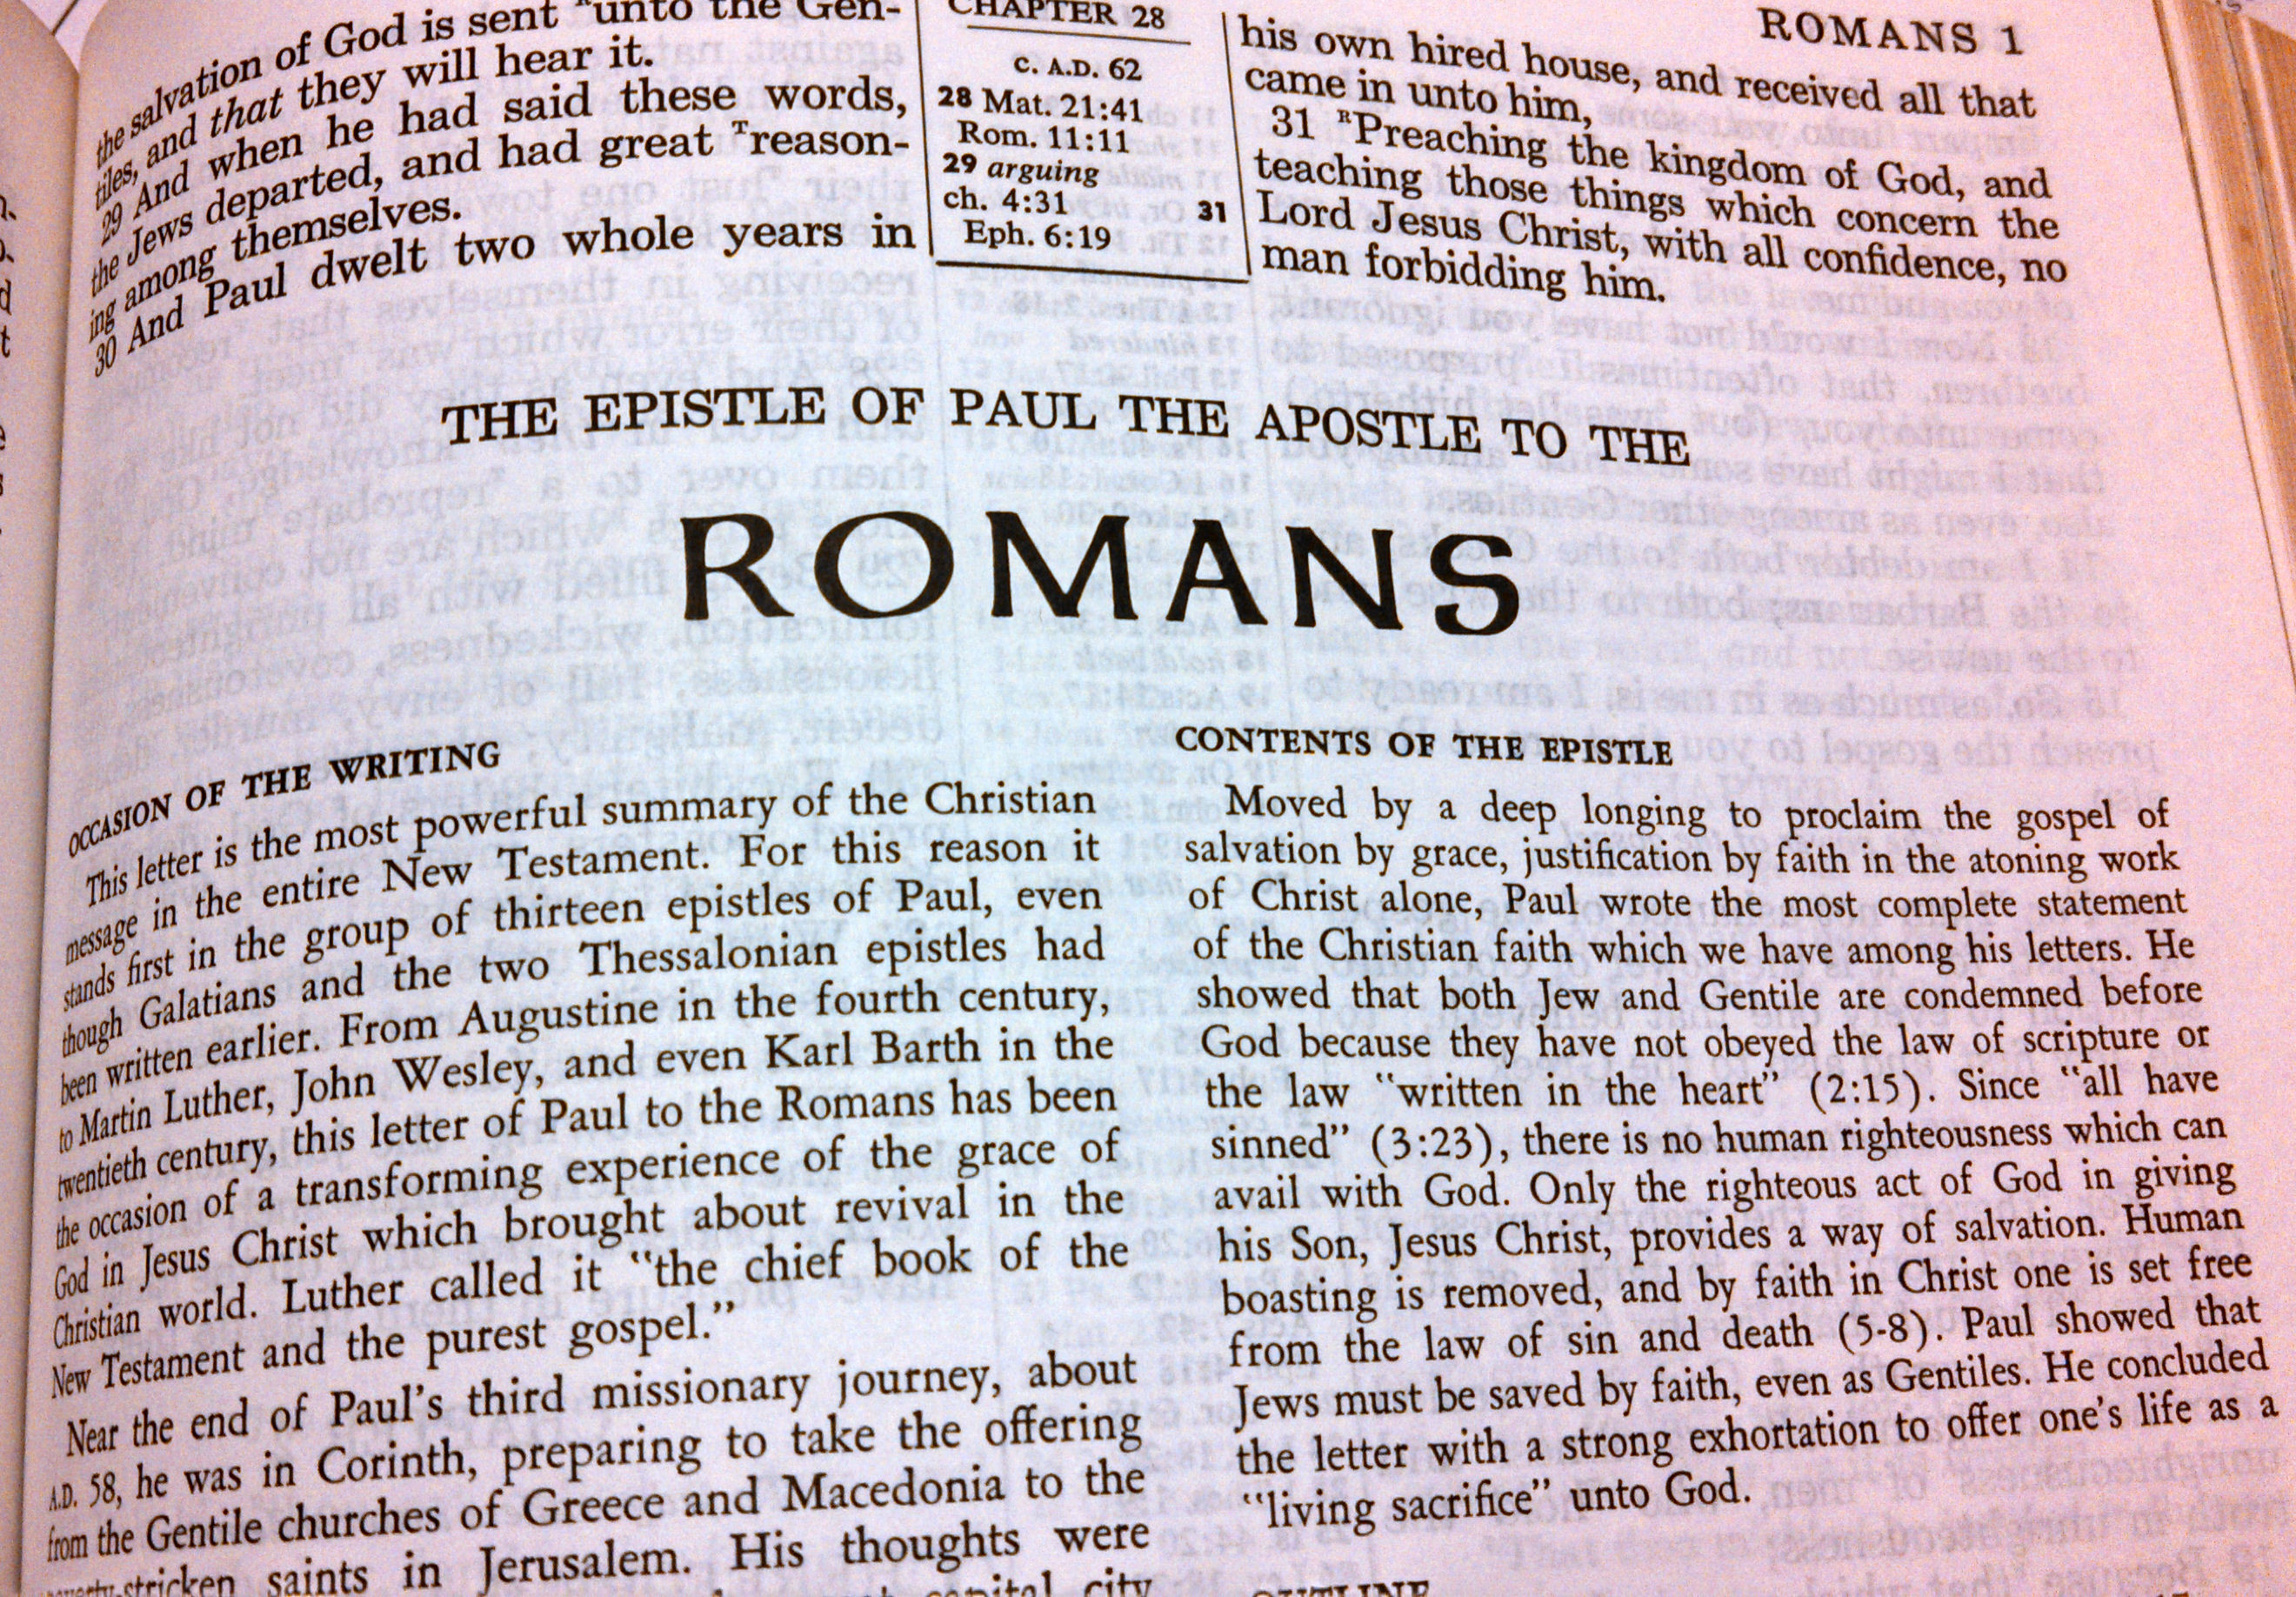 a history and analysis of pauls letter to romans Paul's use of habakkuk 2:4 in romans 1:17 paul's letter to the romans, in the blackwell companion to the new testament then, an analysis of the text shows the structure as hinging upon vv15-1818 there are four sections in the chapter.